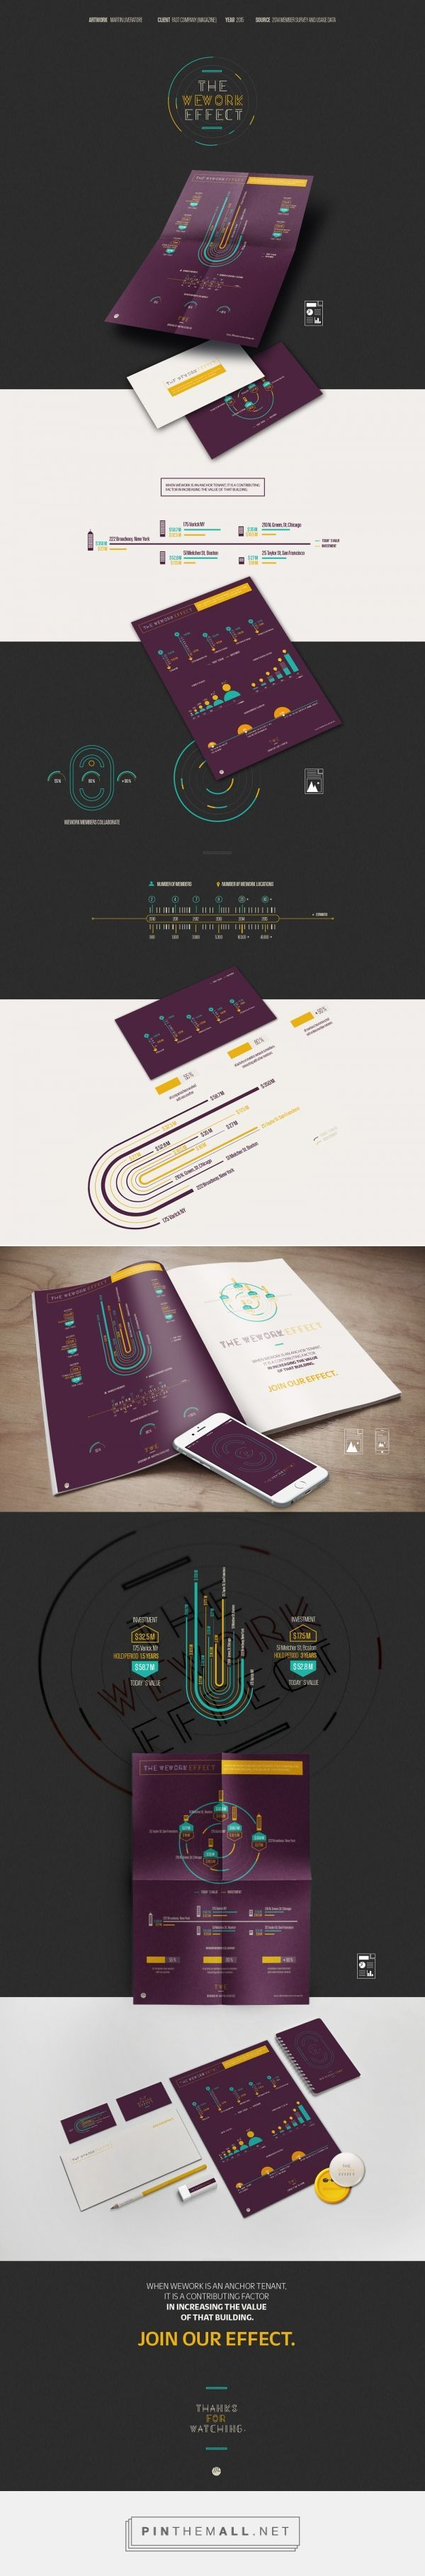 Infographic Design Inspiration The WeWork Effect